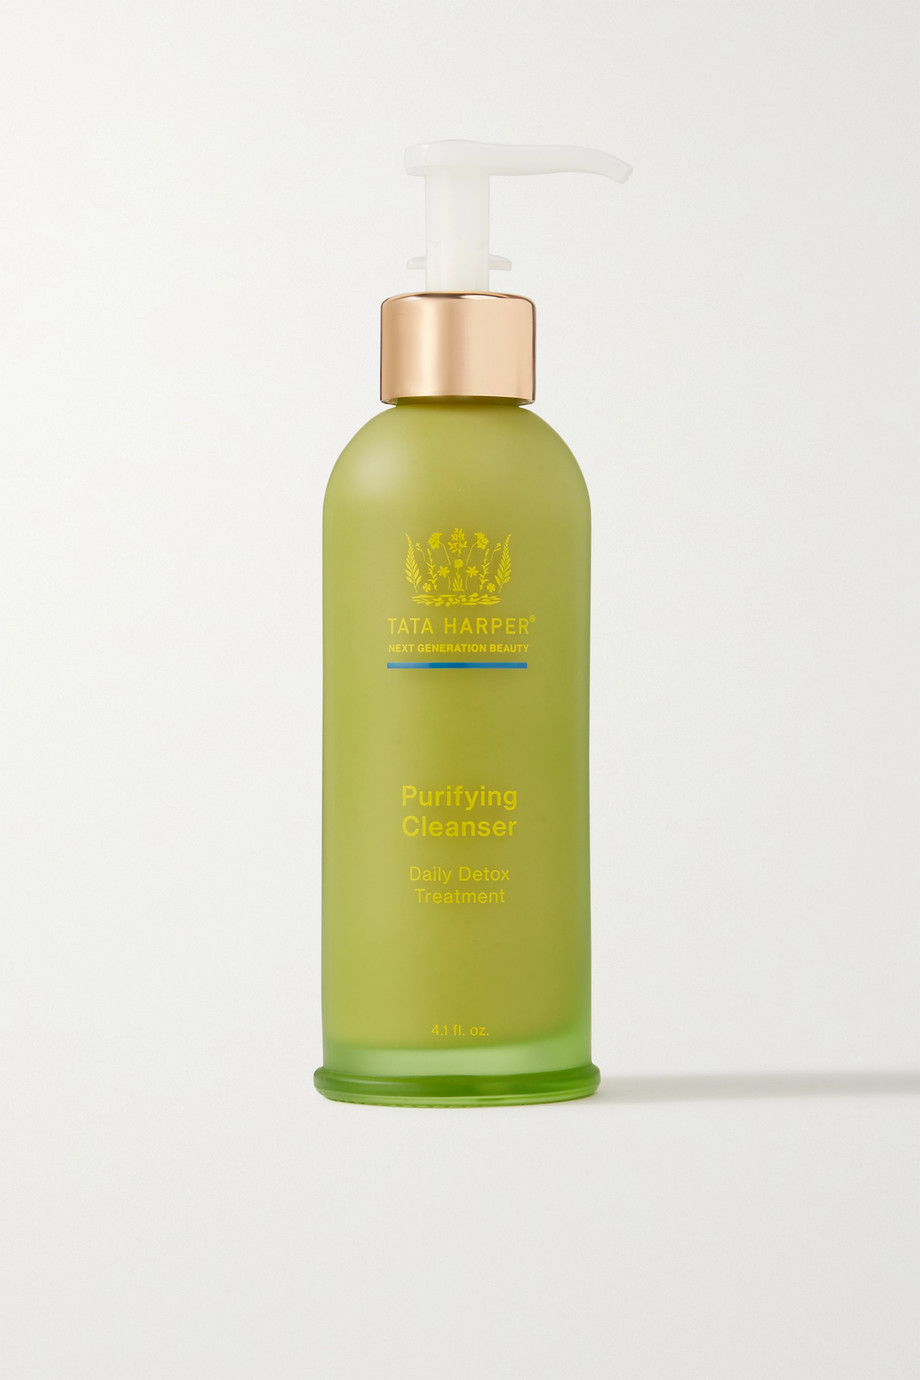 Purifying Cleanser, 125ml, by Tata Harper